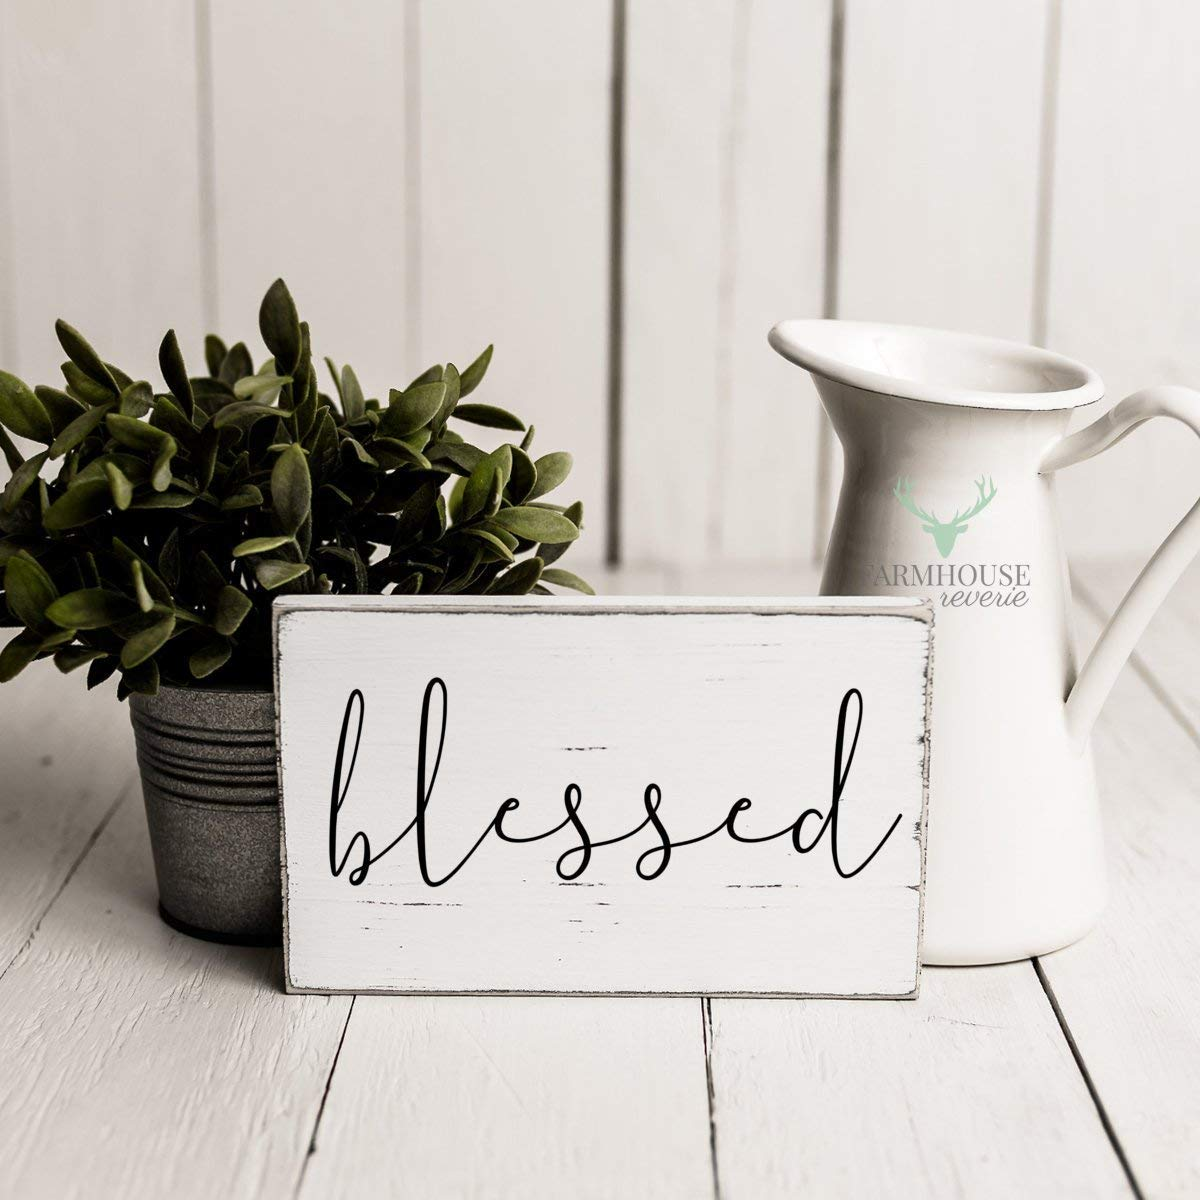 Rustic Blessed Sign | Rustic Wood Sign | Farmhouse Sign | Farmhouse Wall Decor | Rustic Home Decor | Farmhouse Home Decor | French Farmhouse Decor | Shabby Chic | Thanksgiving Decor